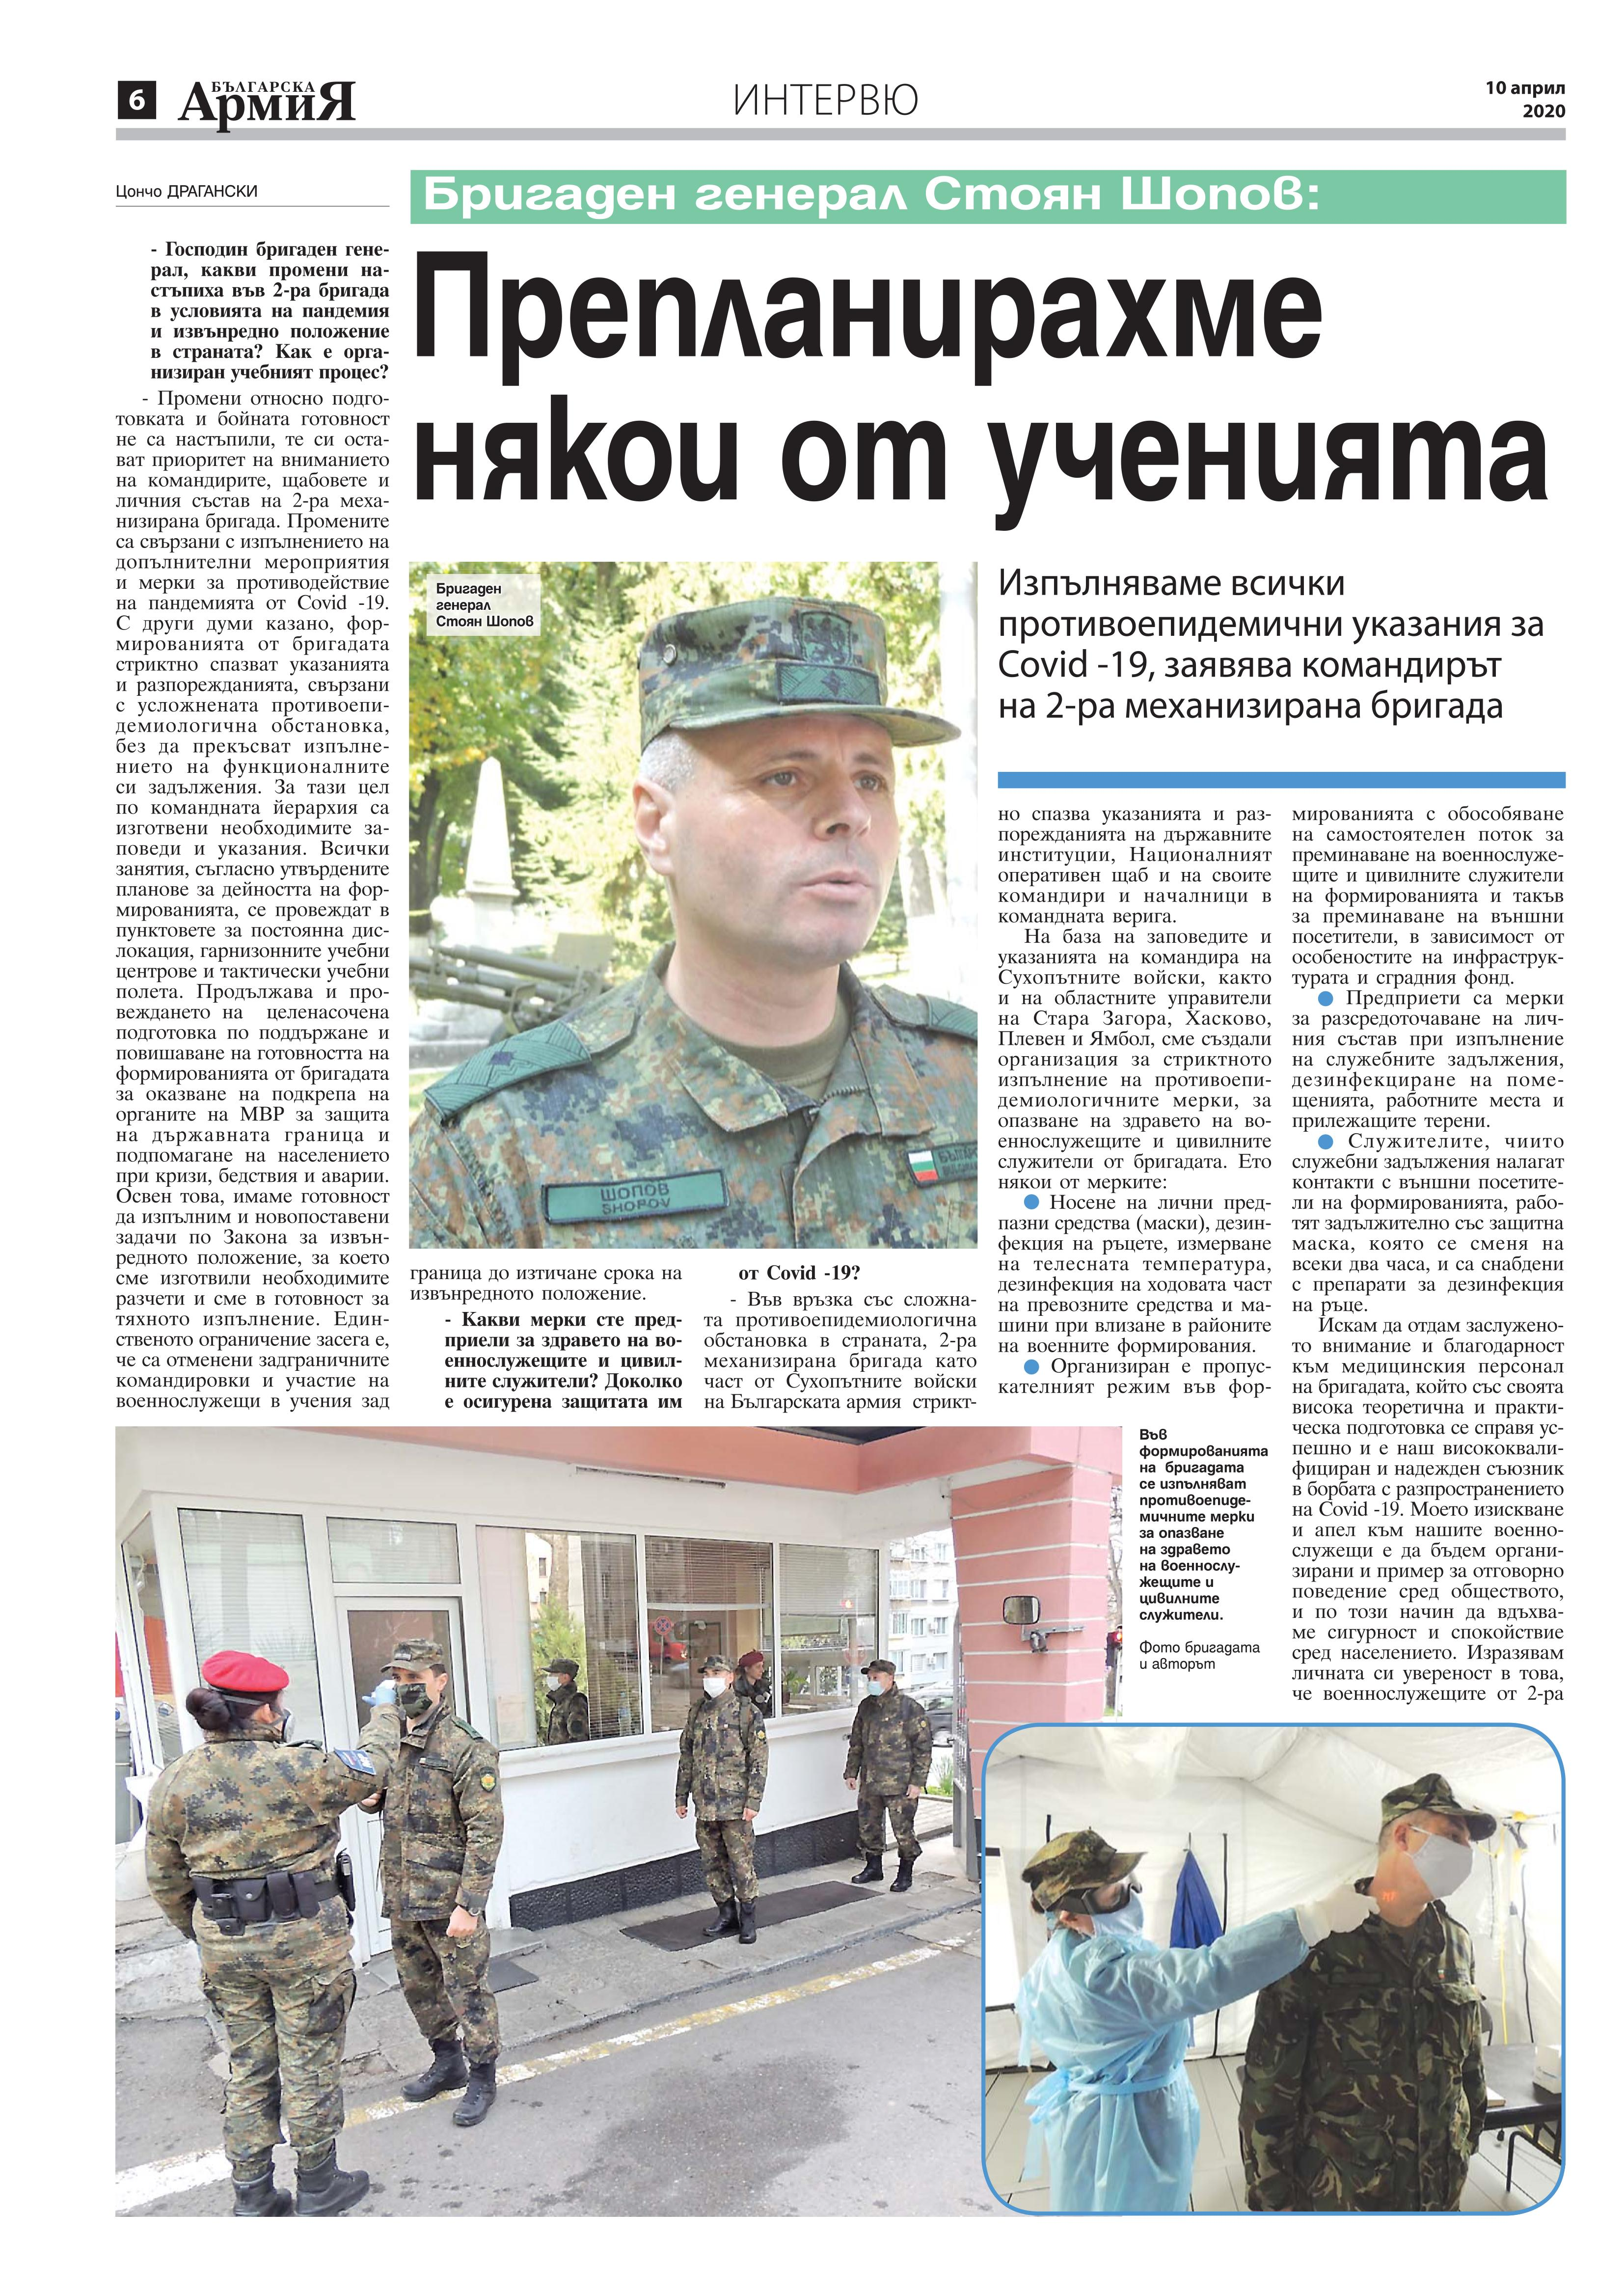 https://www.armymedia.bg/wp-content/uploads/2015/06/06.page1_-131.jpg